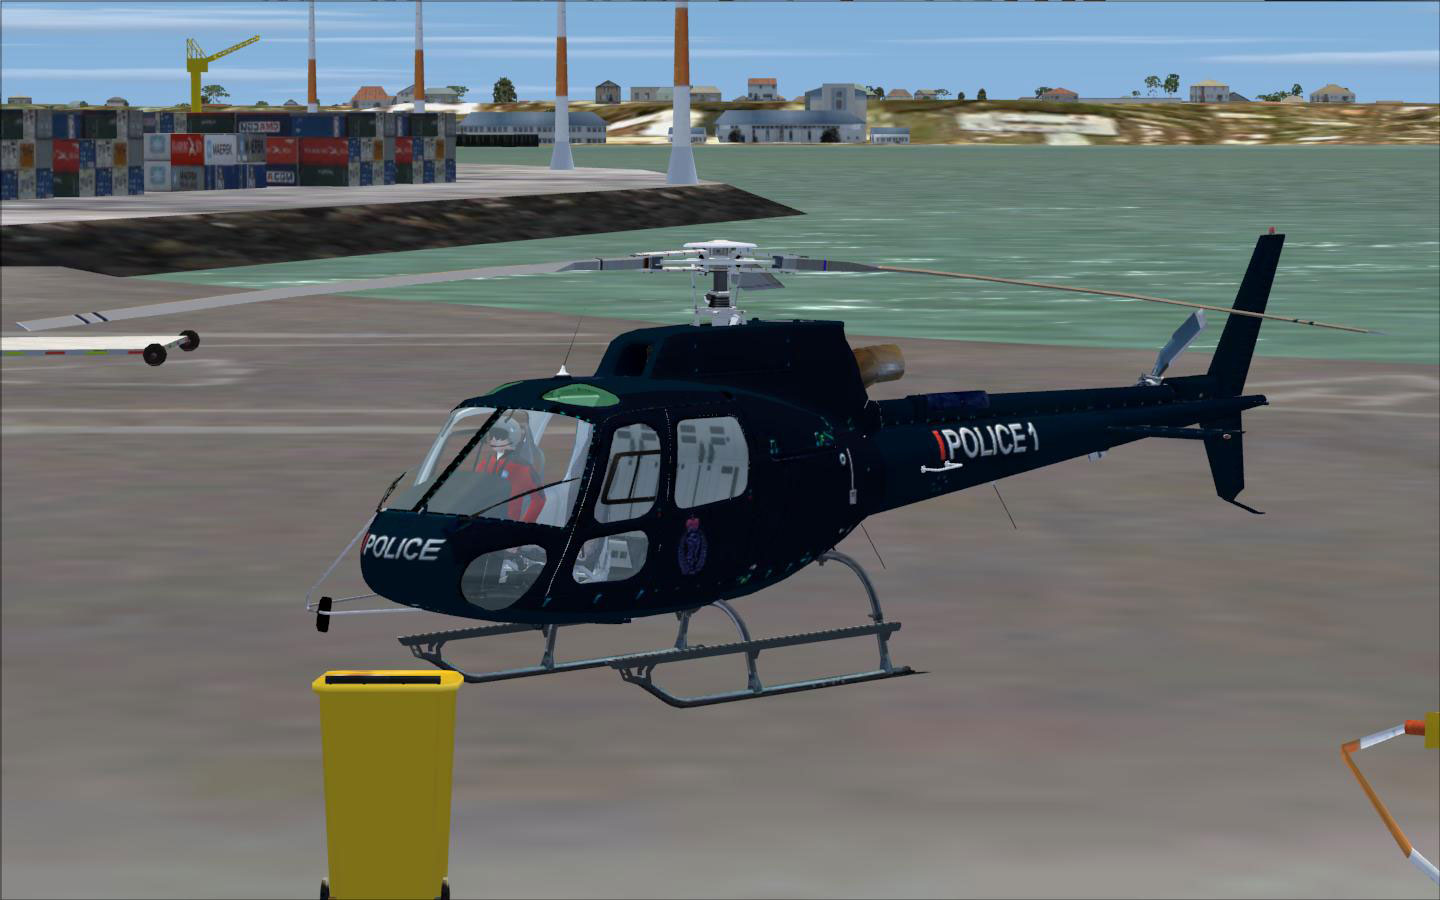 free helicopter flight simulator download with Fsx Auckland Police As350 B3 Eagle on 2986 Fsx Saab Jas 39 Gripen additionally 2971 Fsx Boeing 747 400 Air Transat together with Plane simulator 3d besides Farm Tractor Driver 3d Farming Game 2016 together with Ms Flight Simulator 2004 A Century Of Flight R G Catalyst.